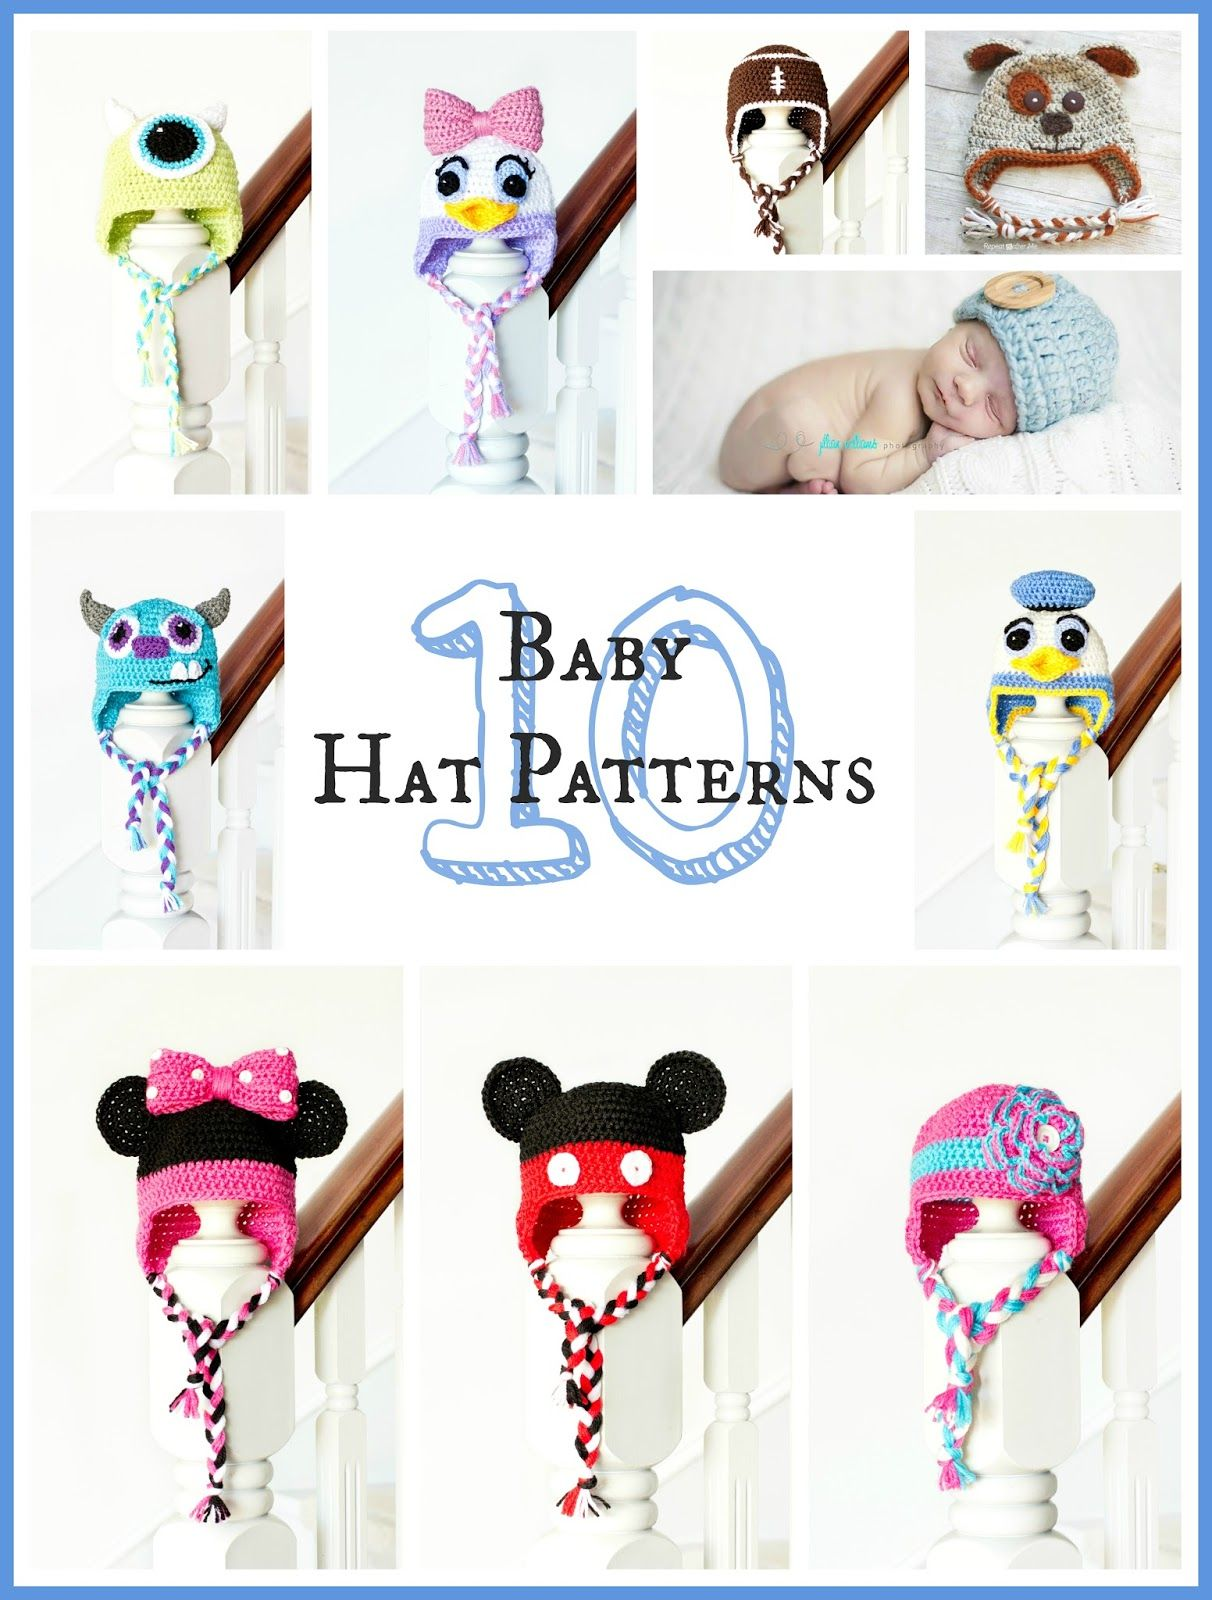 10 Free Adorable Baby Hat Crochet Patterns | Gorros, Tejido y Gorros ...